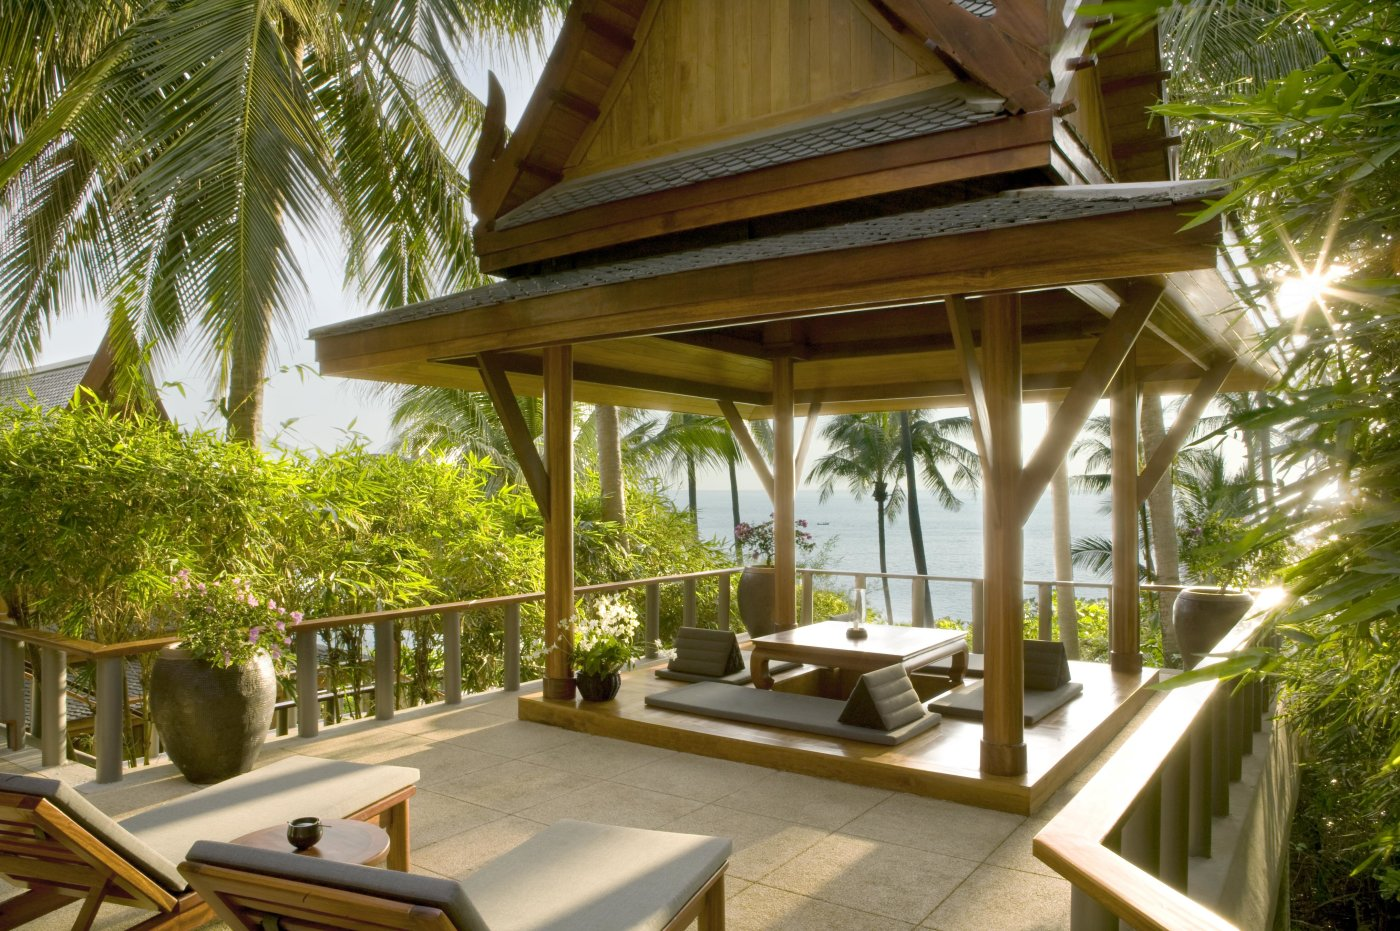 Amanpuri wellness retreats